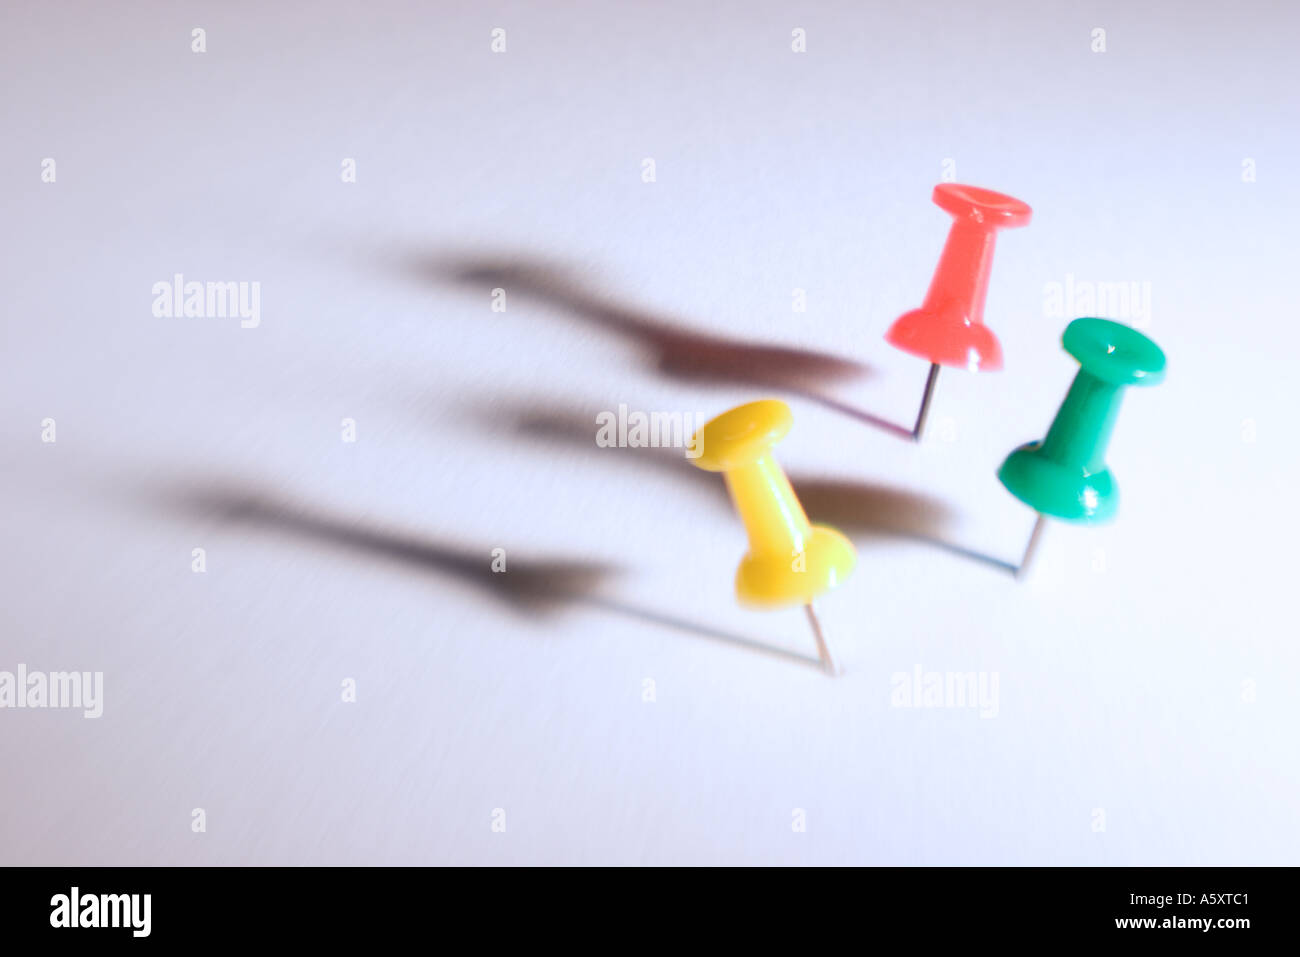 map pins casting shadows. Concept of positions or locations - Stock Image